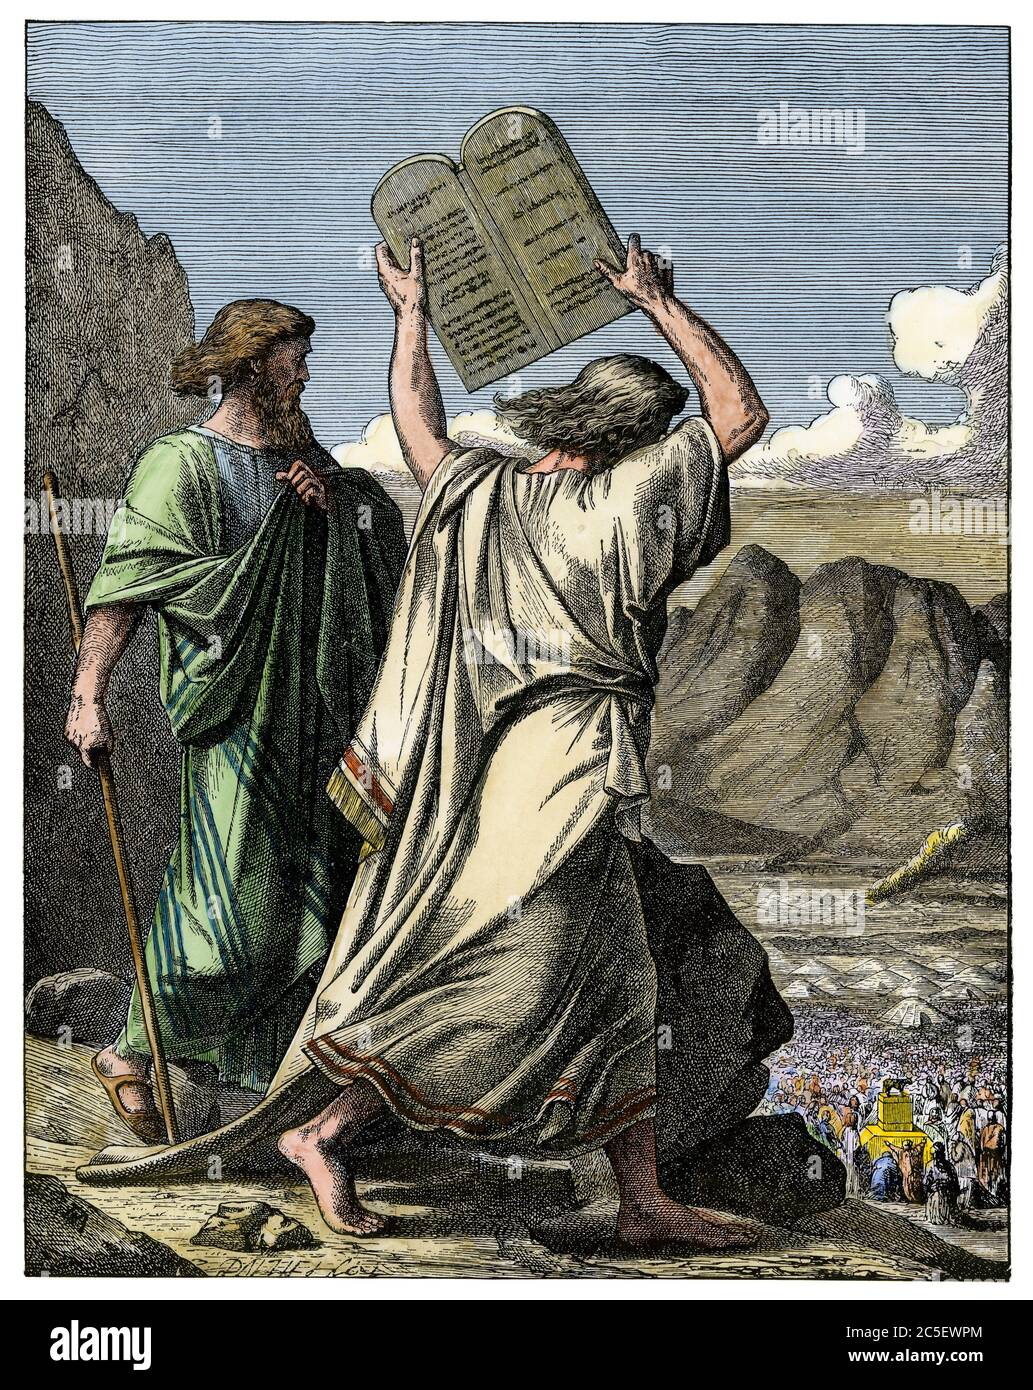 Moses smashing the Ten Commandments tablets after Hebrews' worship of a golden calf. Hand-colored woodcut Stock Photo